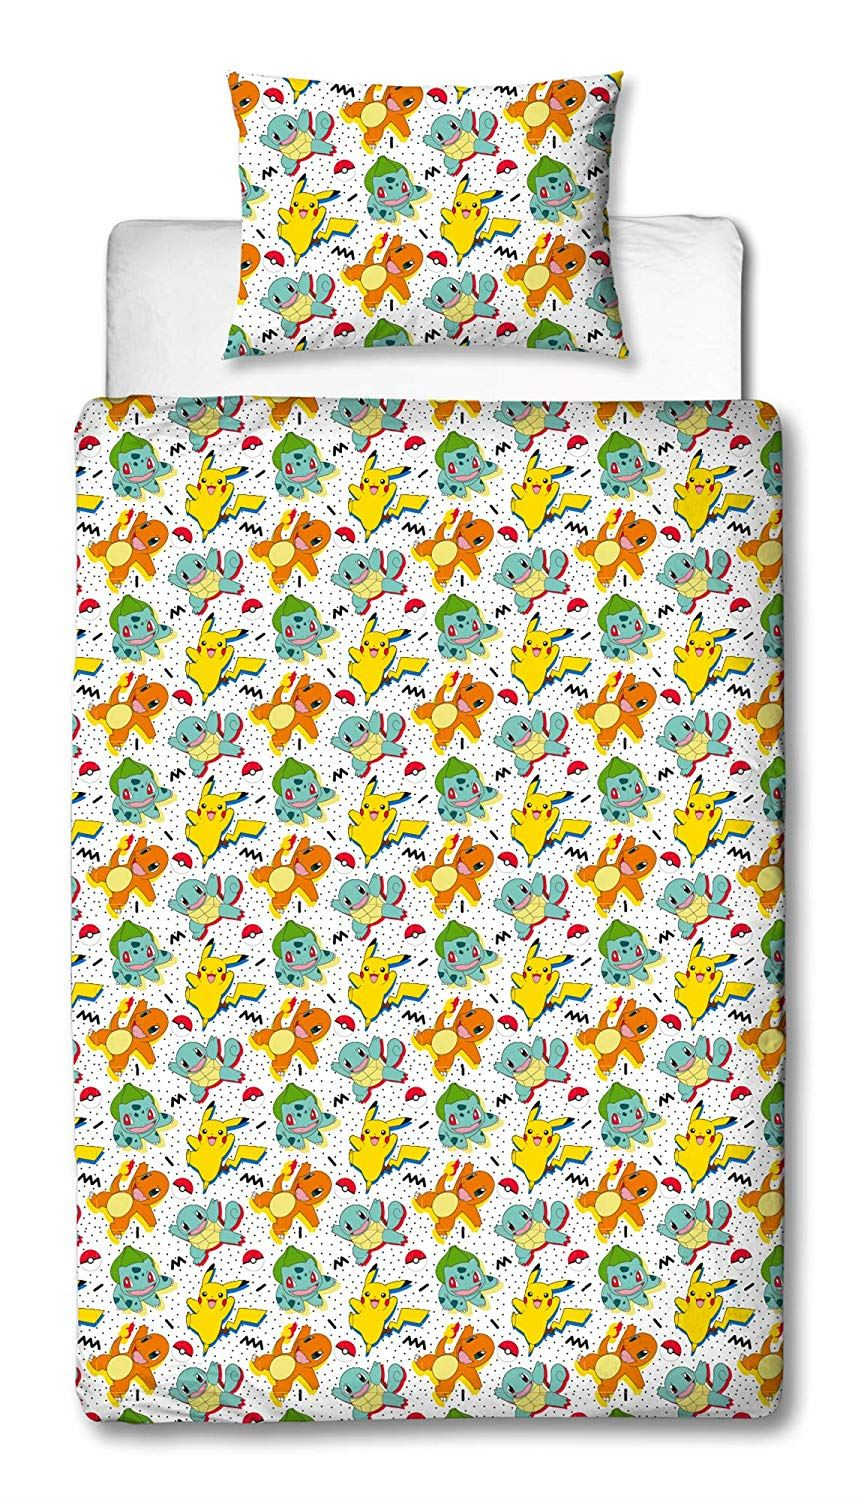 Official-Pokemon-Licensed-Duvet-Covers-Single-Double-Pikachu-Bedding-Gaming thumbnail 33